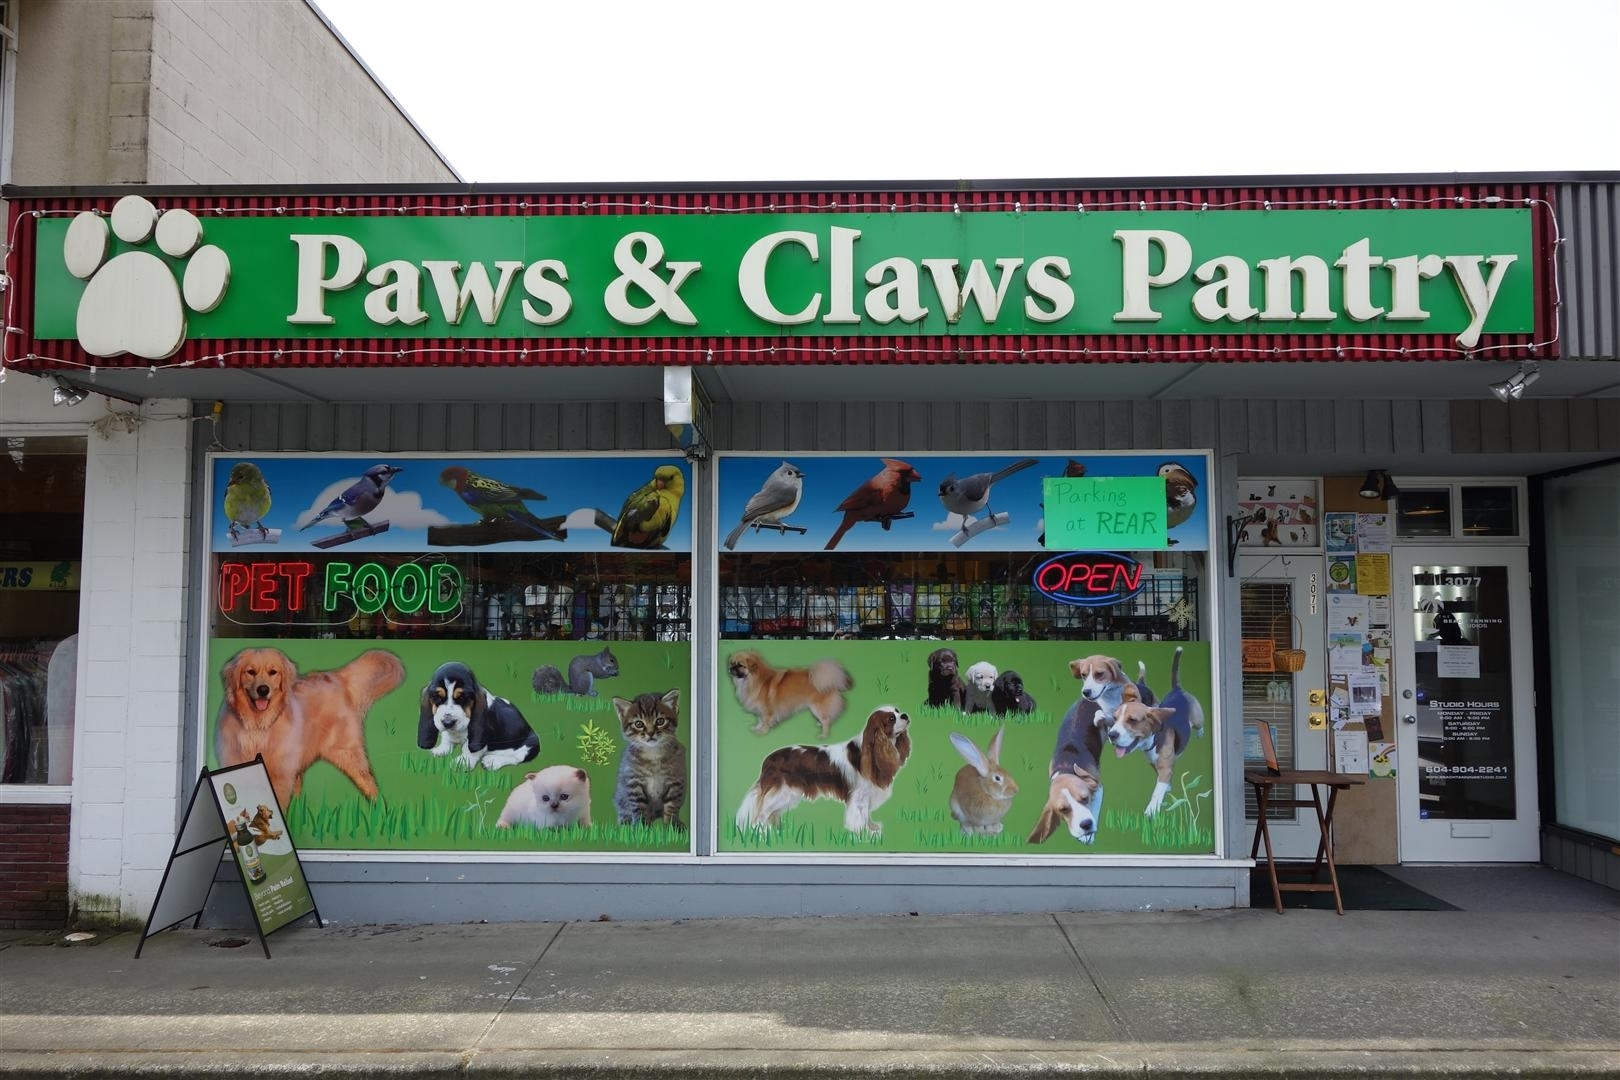 Paws & Claws Pantry in North Vancouver